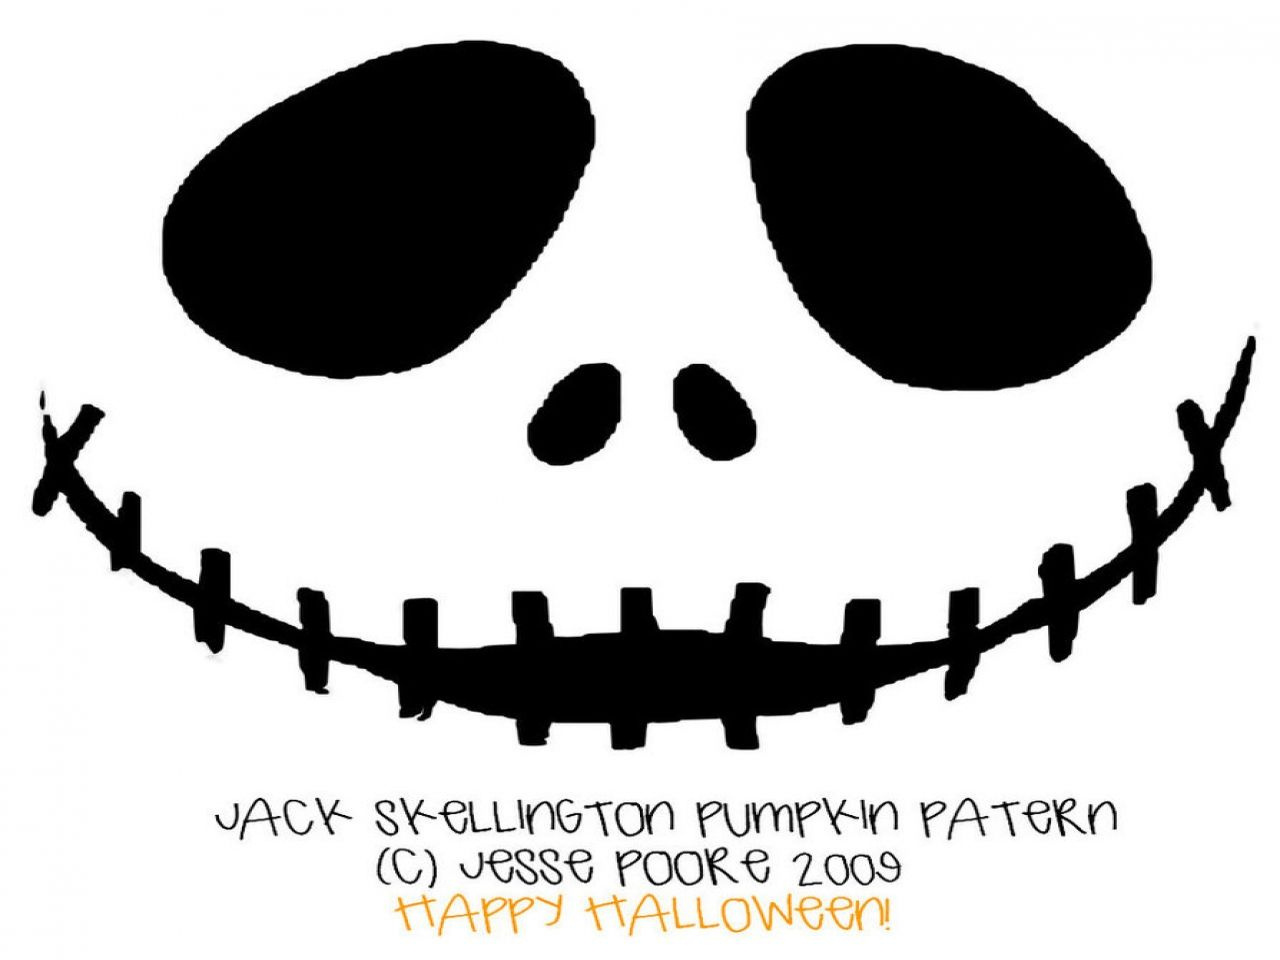 Free Printable Jack Skellington Pumpkin Carving Stencil Templates - Jack Skellington And Sally Pumpkin Stencils Free Printable